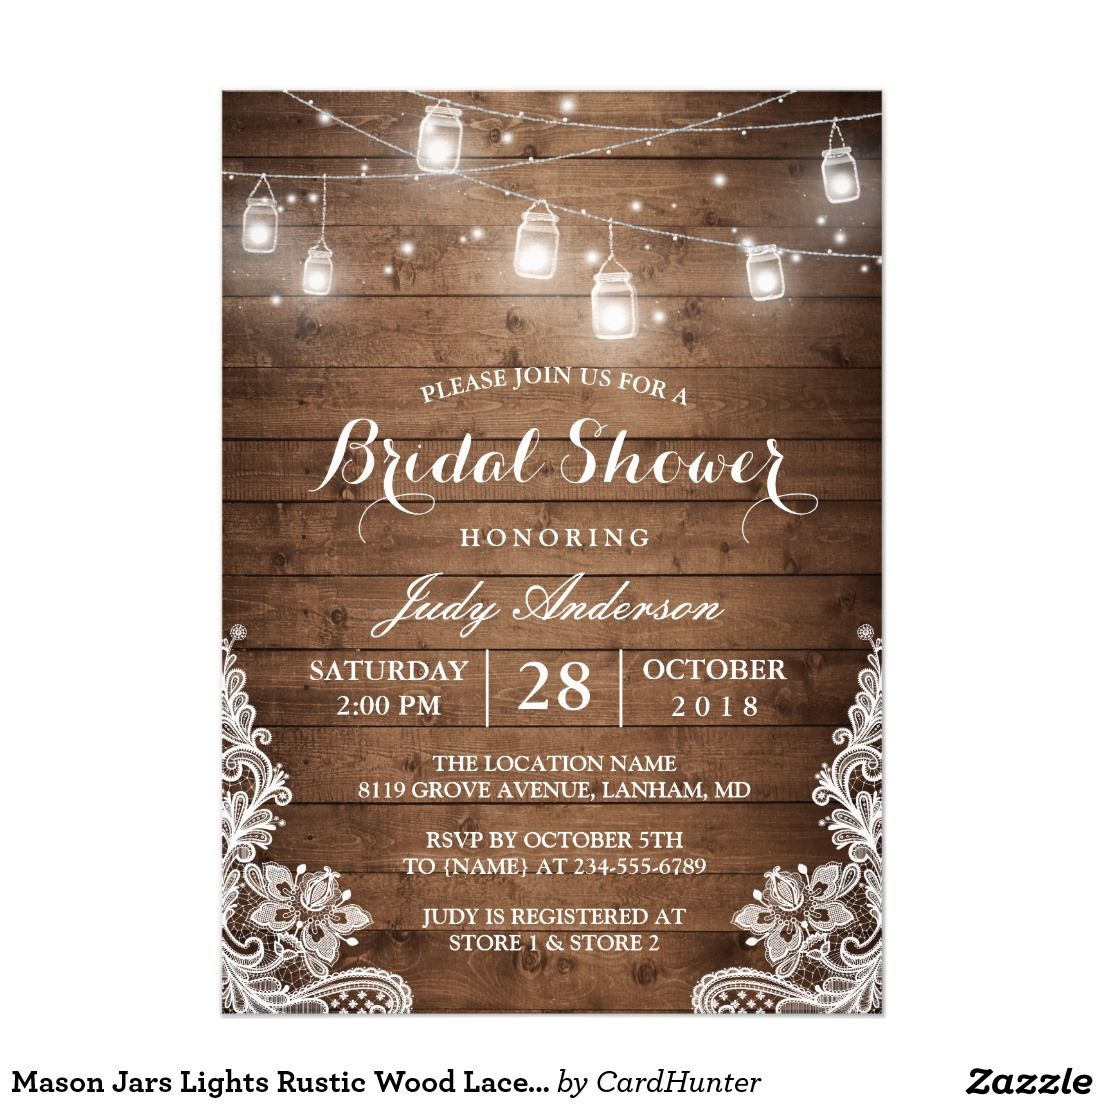 Mason Jars Lights Rustic Wood Lace Bridal Shower Invitation Zazzle Com Bridal Shower Rustic Lace Bridal Shower Invitation Wedding Invitations Rustic